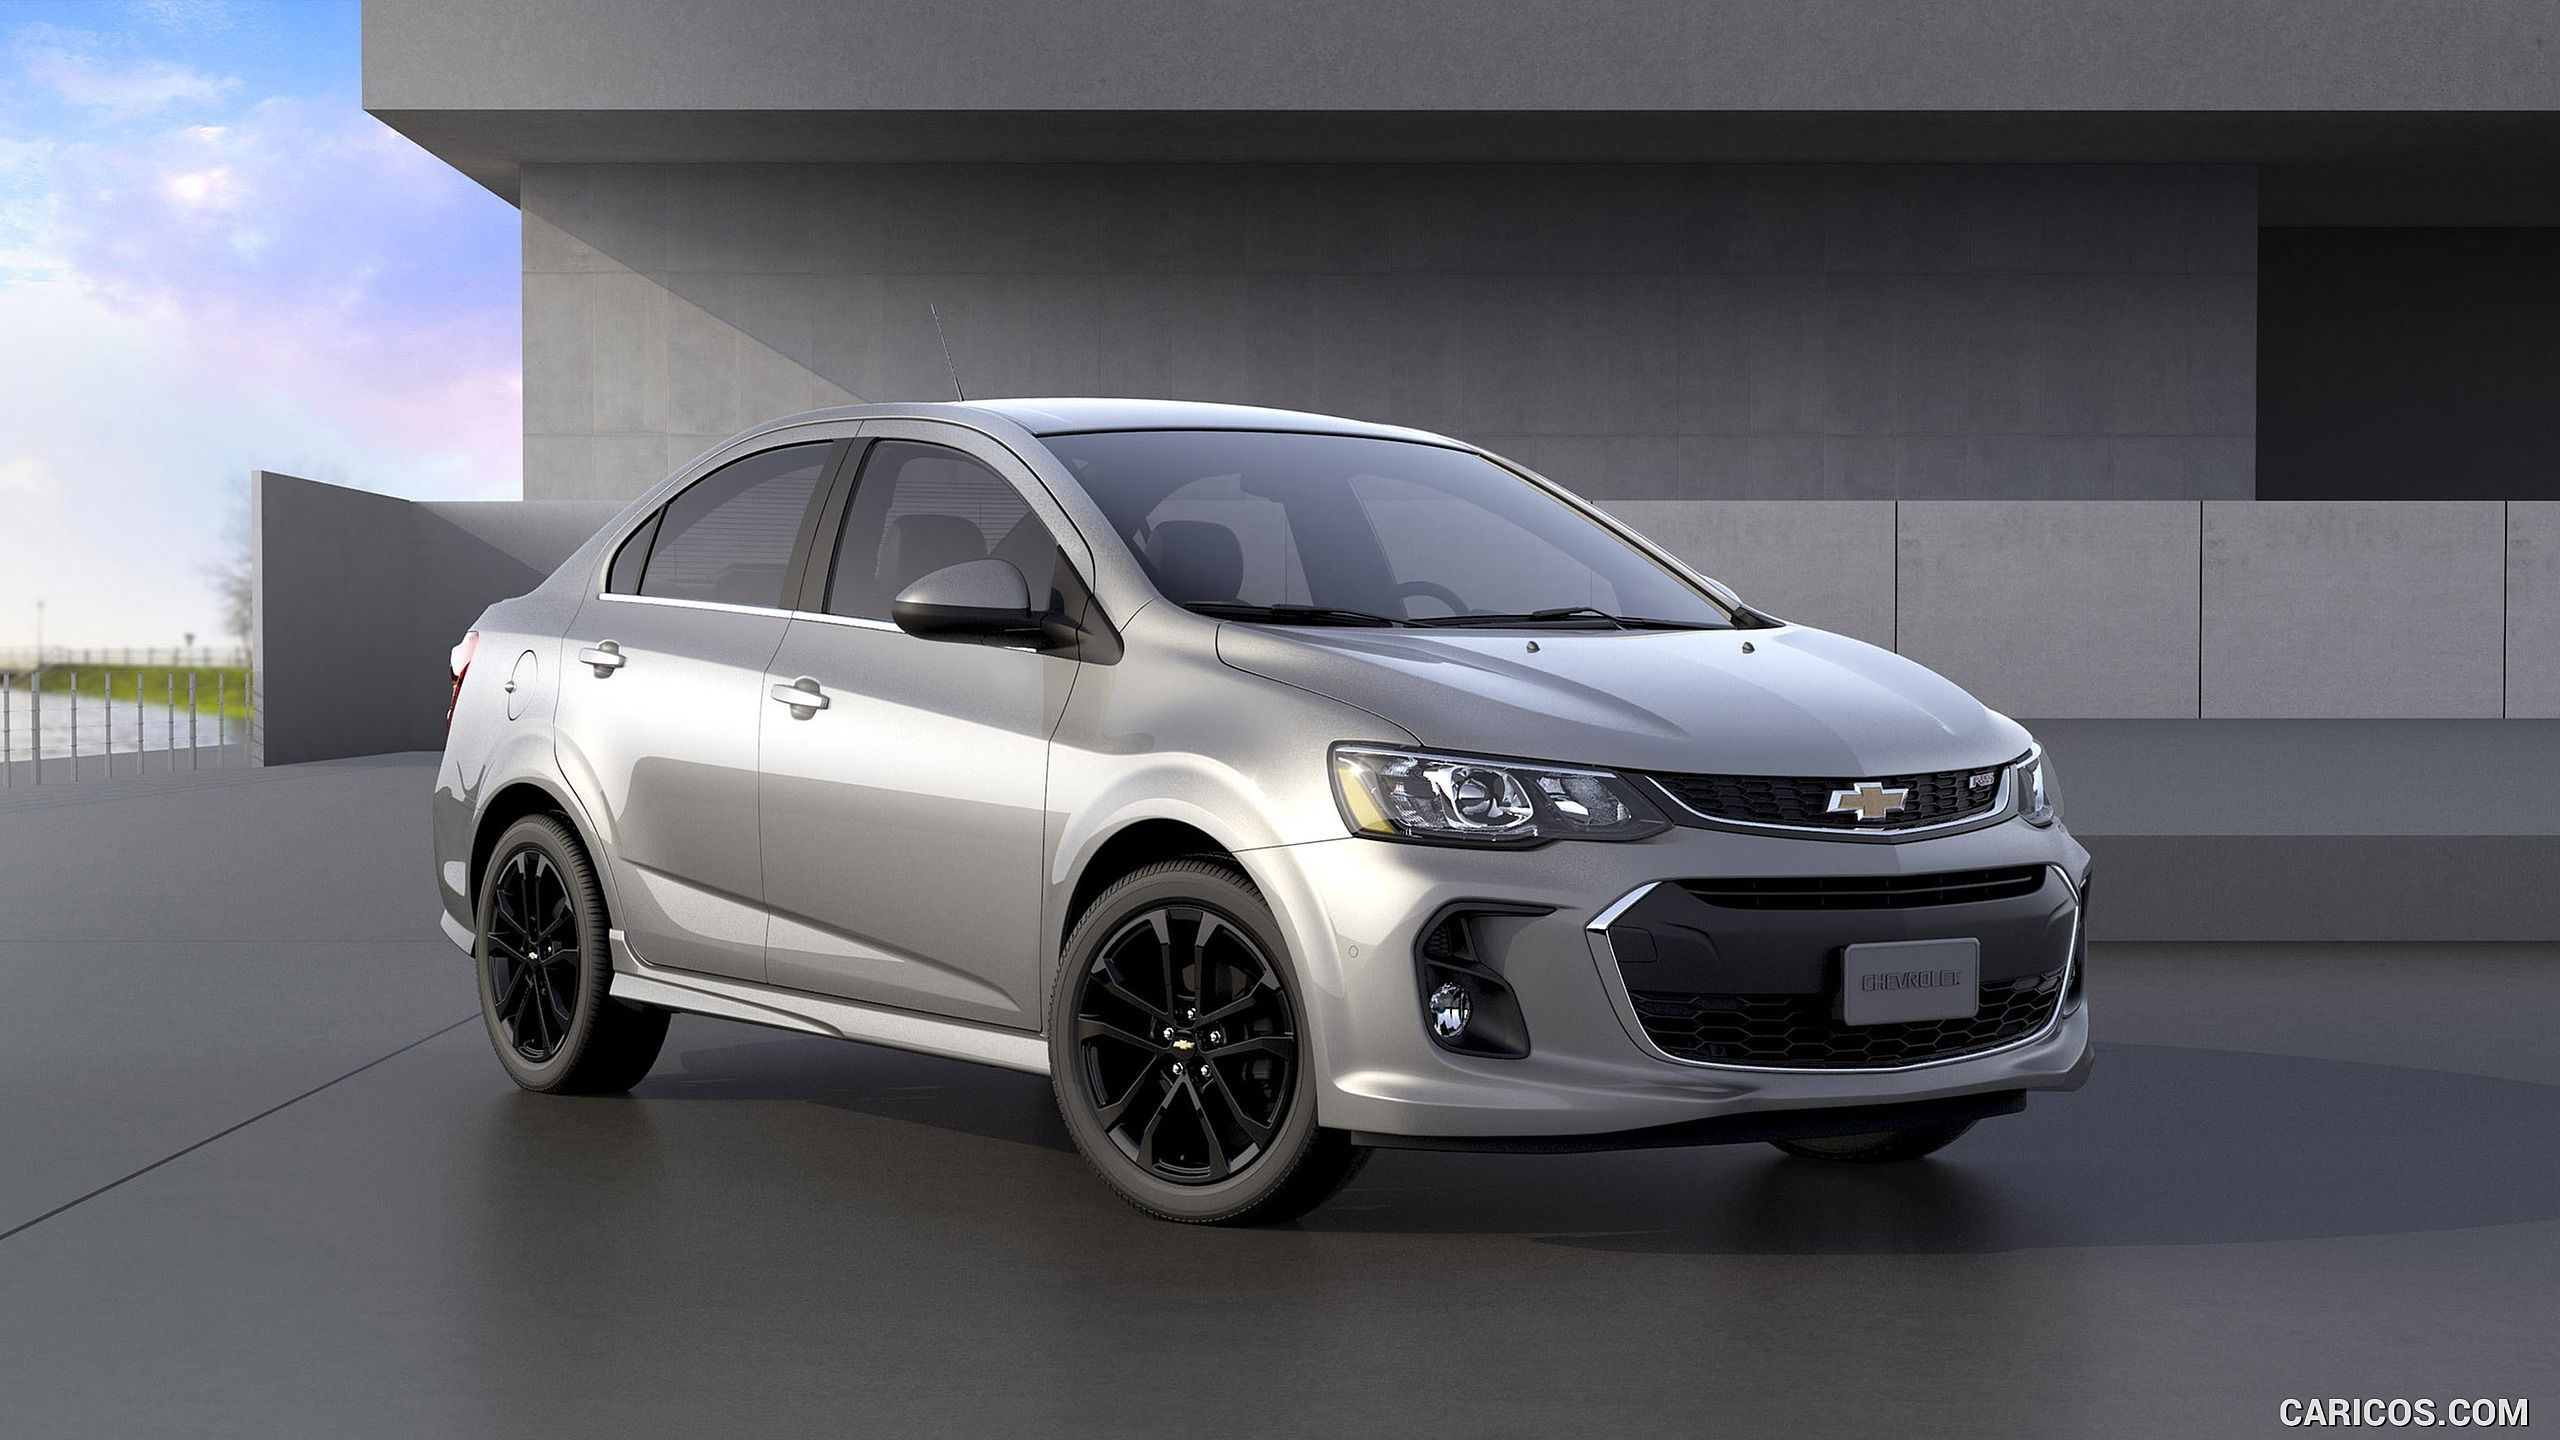 2017 Chevrolet Sonic Hatchback And Sedan Wallpaper Chevrolet Sonic 2017 Aveo 2017 Coches Chulos